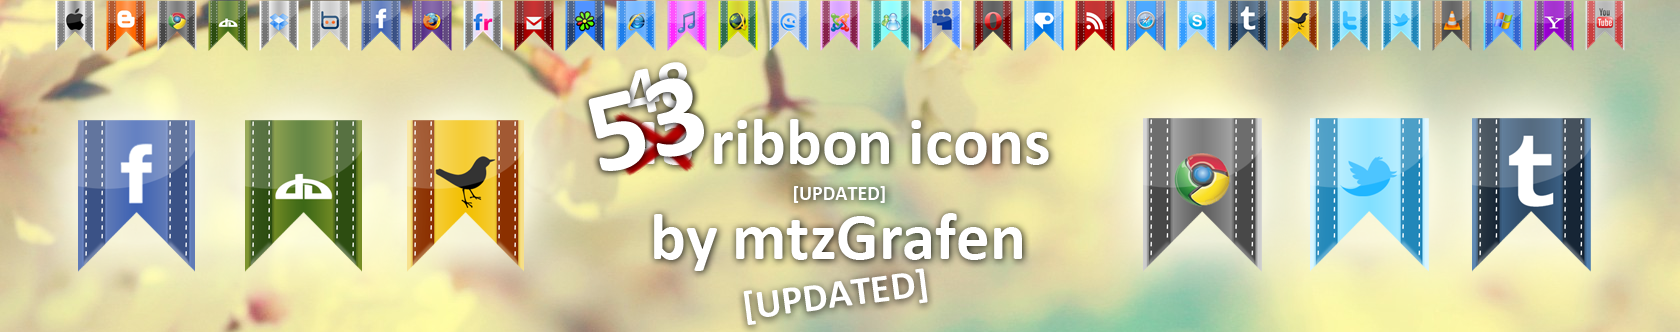 Ribbon Icon Pack by mtzGrafen